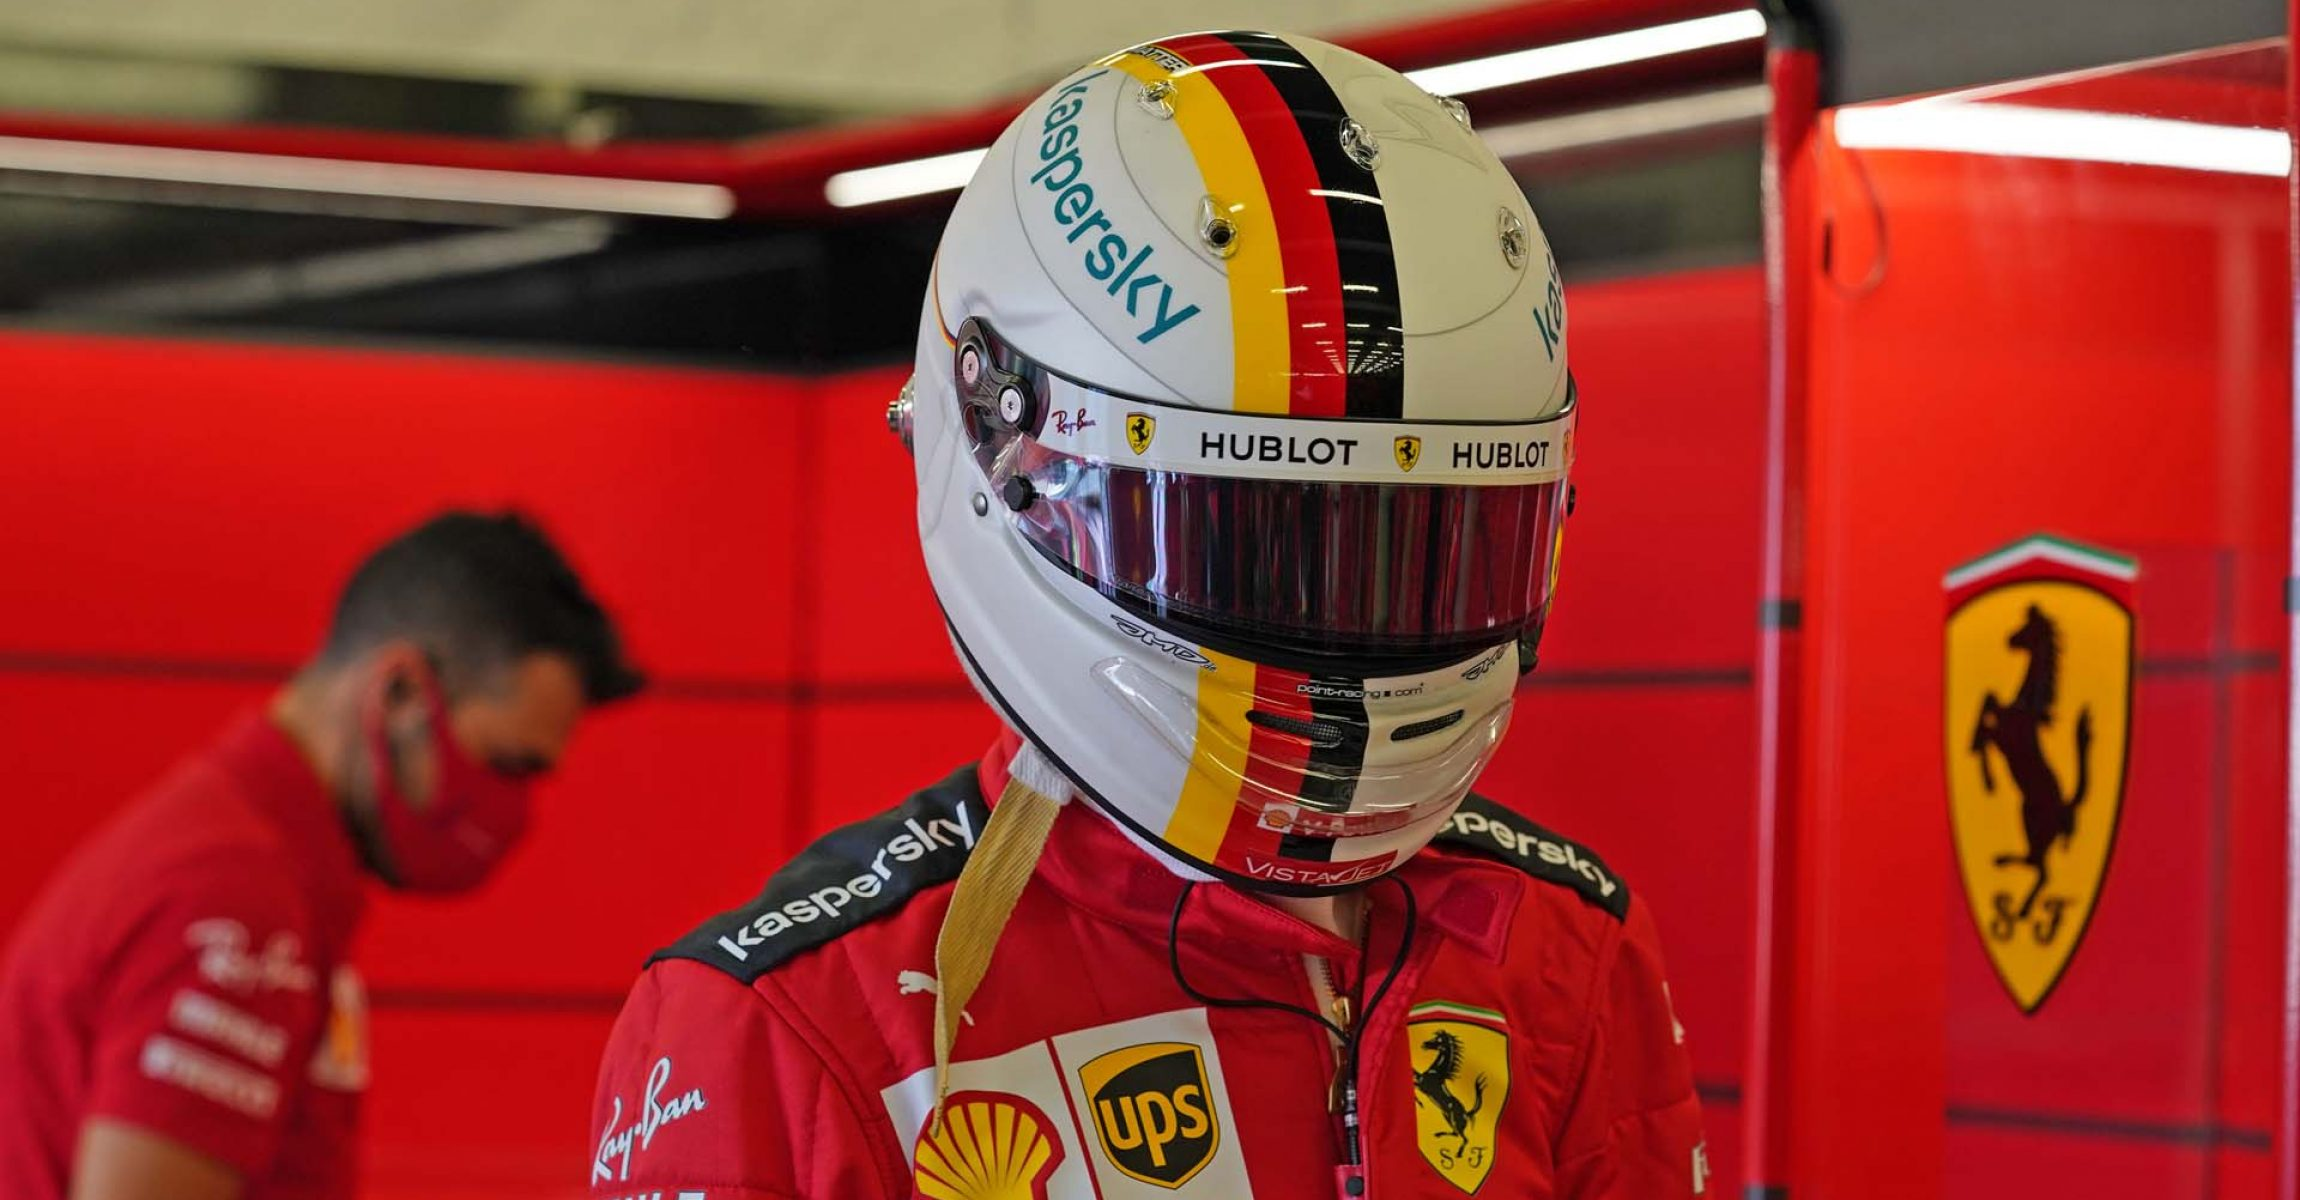 GP 70MO ANNIVERSARIO  F1/2020 -  SABATO 08/08/2020  credit: @Scuderia Ferrari Press Office Sebastian Vettel